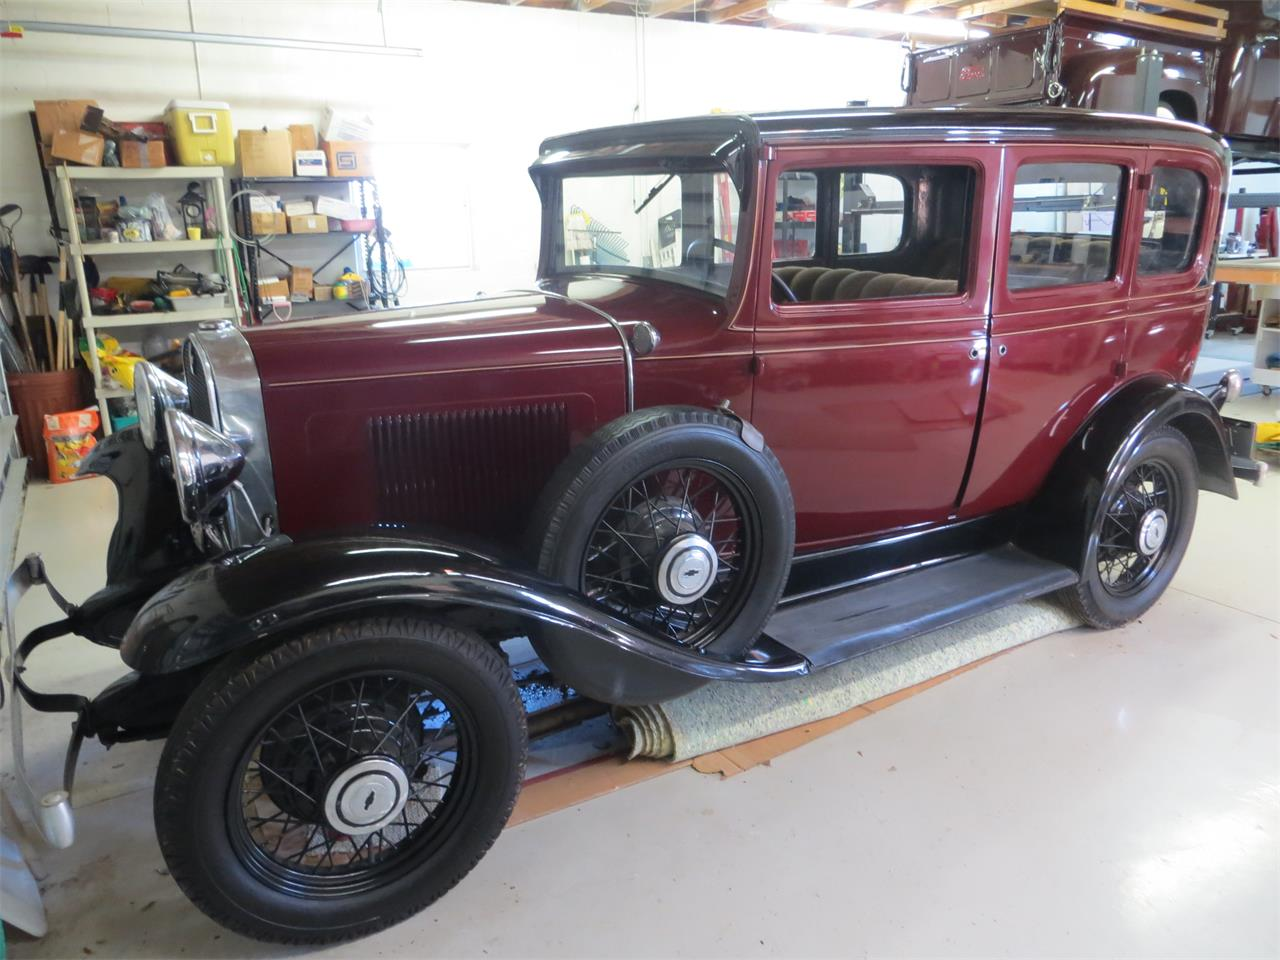 Large Picture of '31 Chevrolet Independence located in Lake Placid Florida - $13,900.00 Offered by a Private Seller - KKT4